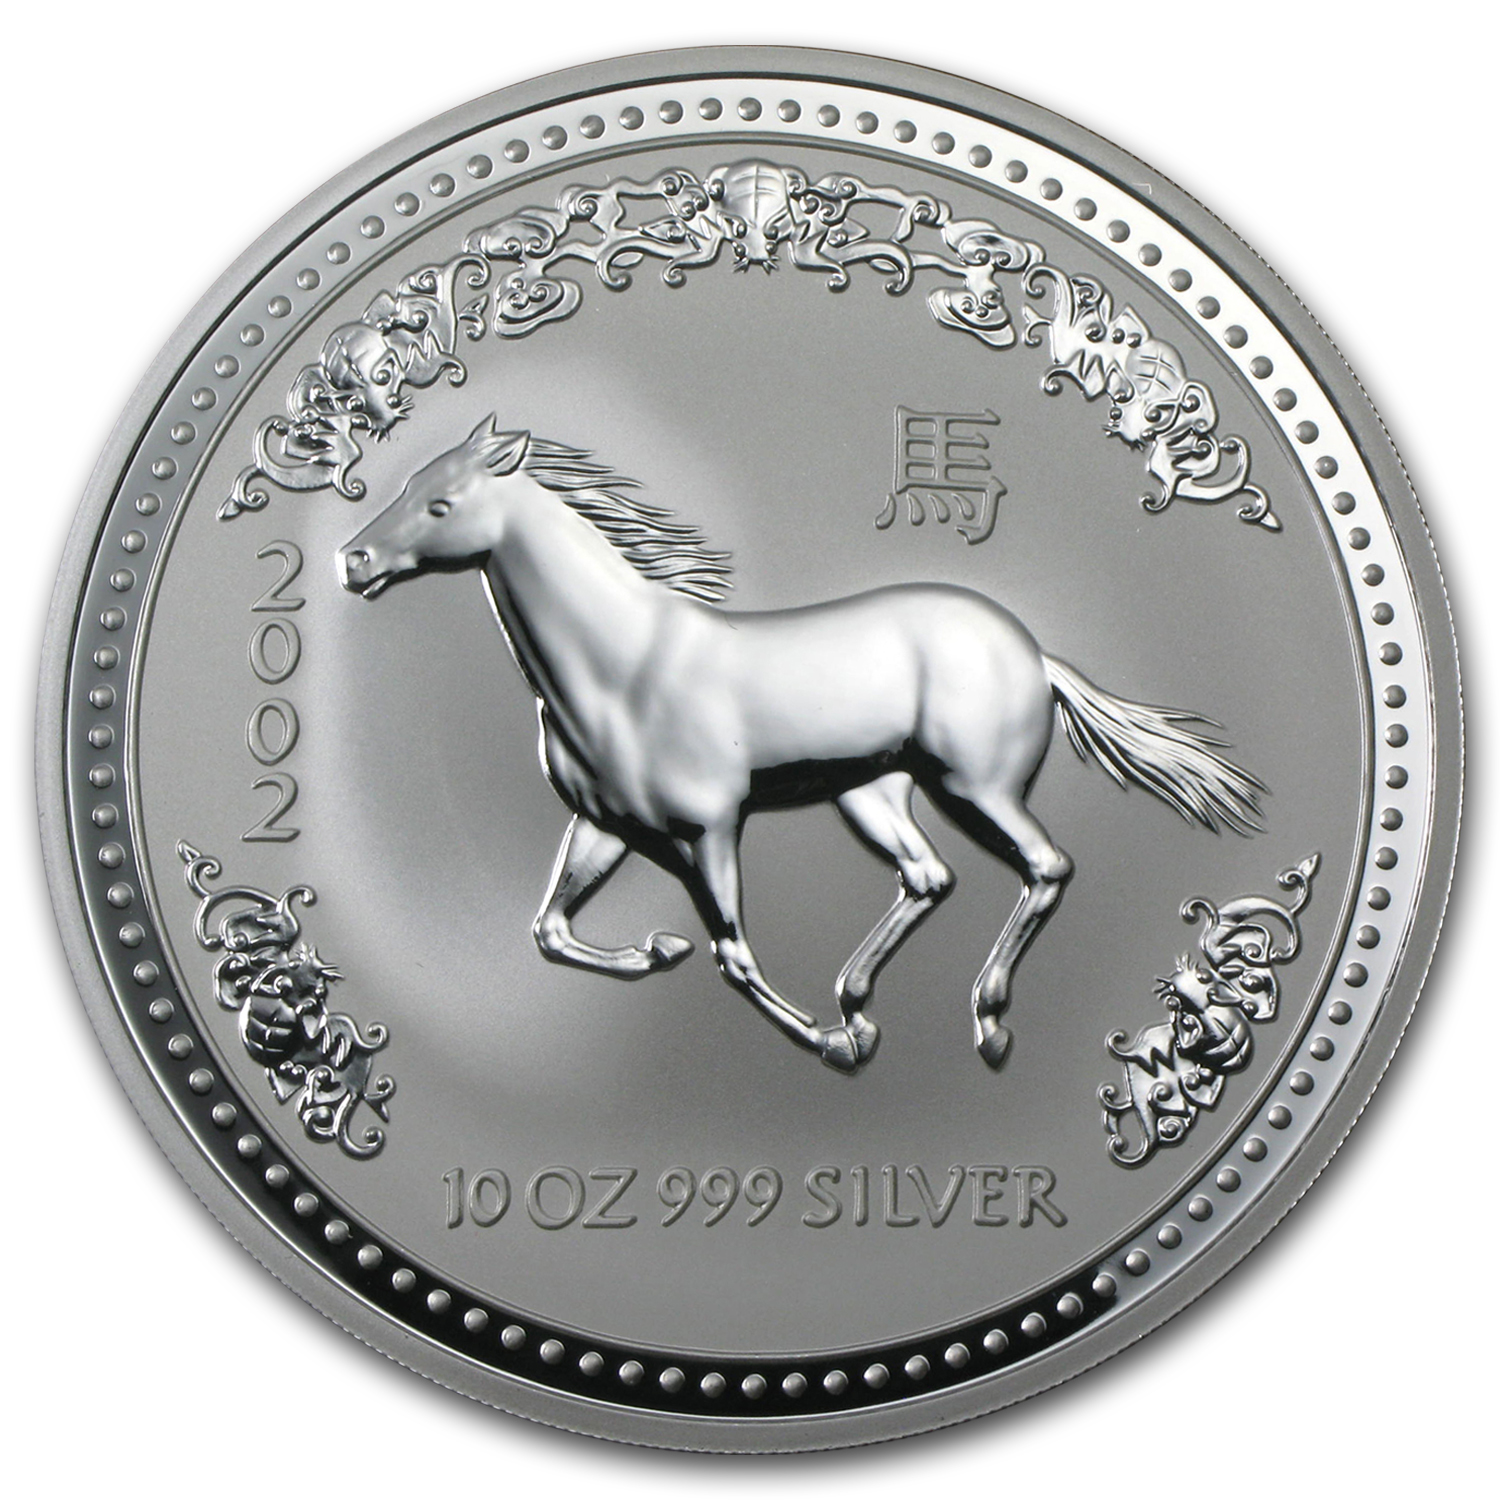 2002 Australia 10 oz Silver Year of the Horse BU